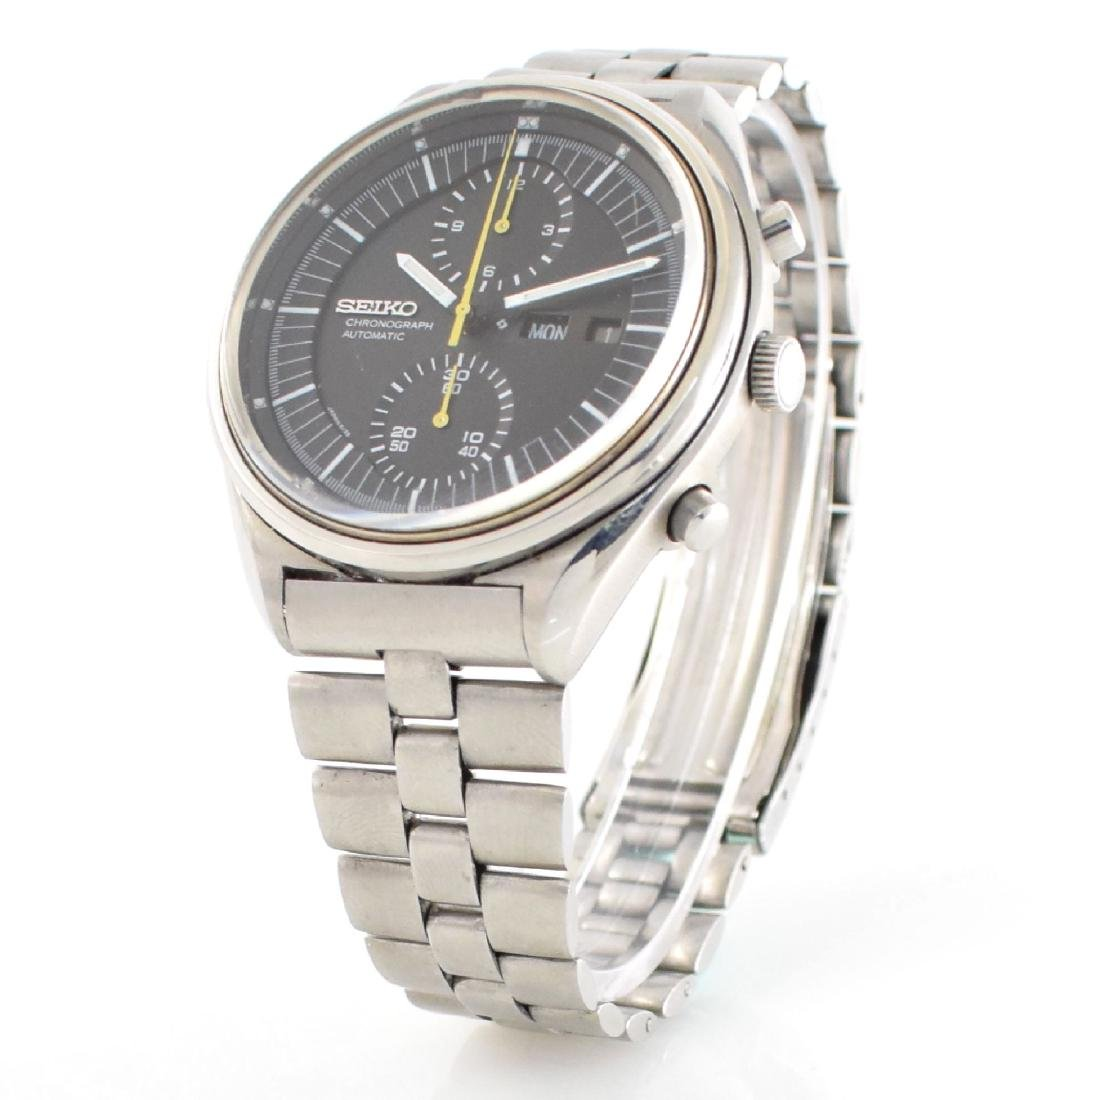 SEIKO gents wristwatch with chronograph in steel - 4